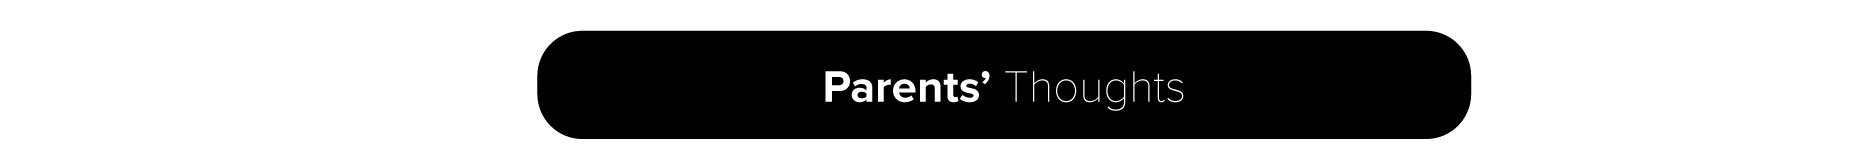 Parents-Thoughts-banner.jpg